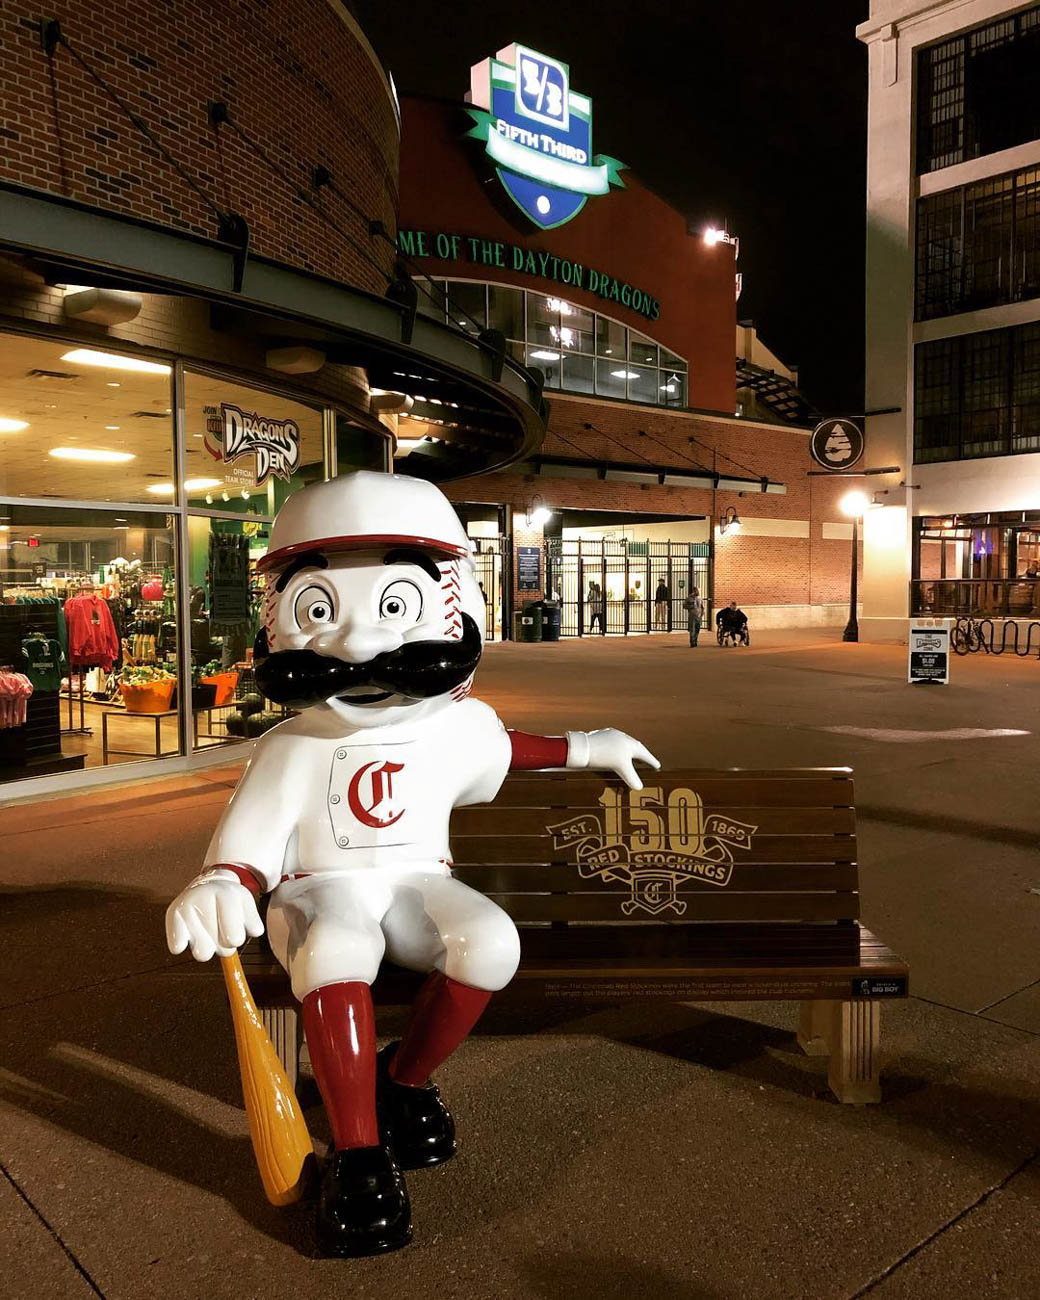 To celebrate the Reds' 150th Anniversary, 24 benches featuring Mr. Redlegs sculptures have been added to various spots around the area, as well as out of town locations including Dayton, Loveland, and Louisville, for the perfect Reds photo op. The mascot sports different uniforms from throughout the team's history at each of the benches. The Reds have been wearing these same throwback uniforms during their 2019 season. / Location: Dayton Dragons / Uniform: 1869 / Image courtesy of Instagram user @phoenician_fan   // Published: 5.14.19